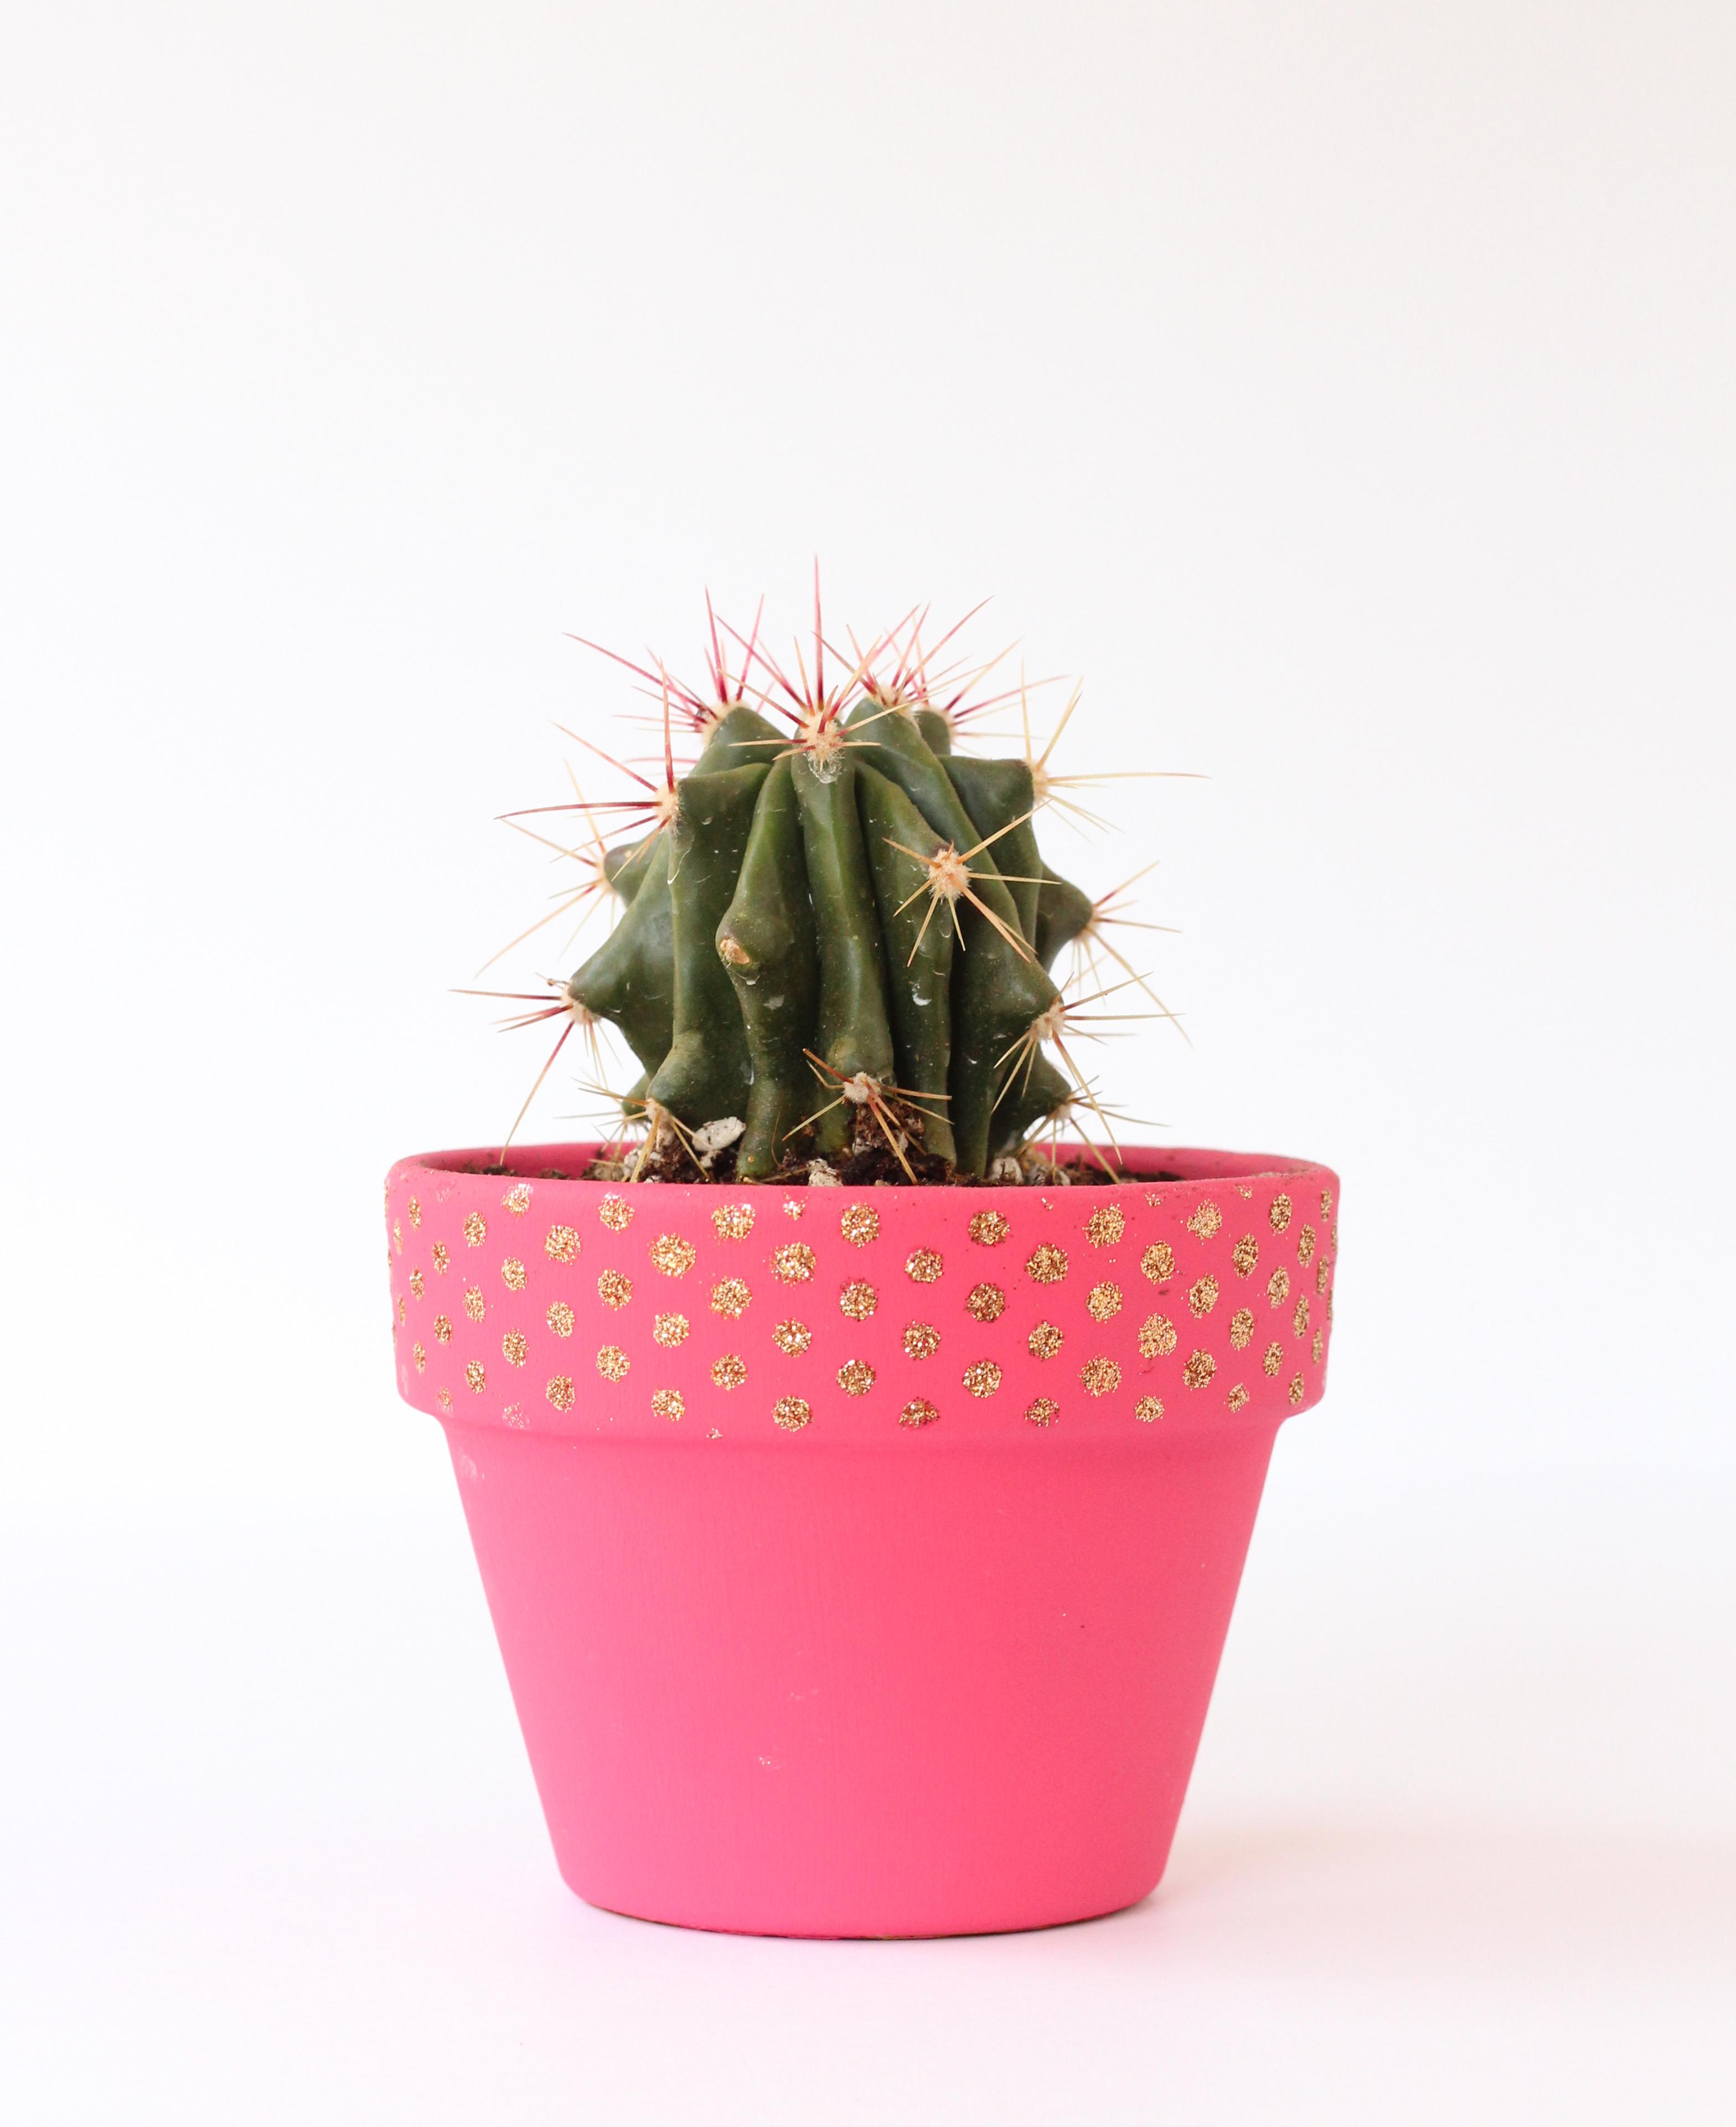 Stenciled Cactus Planter Crafted Life